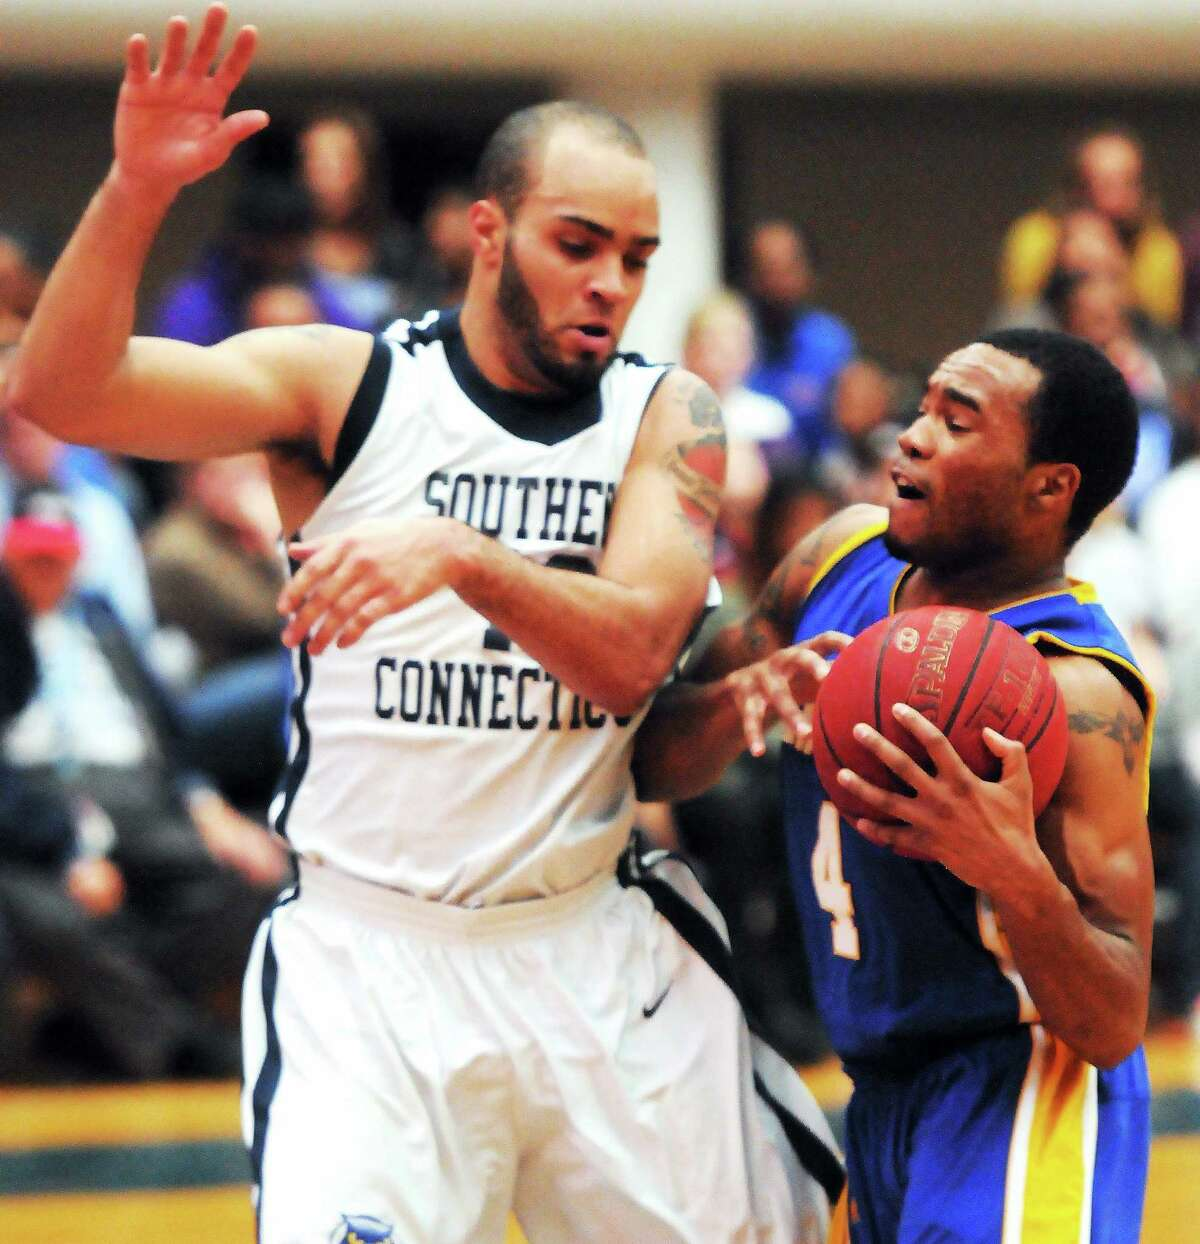 Jeffery Adkins, right, and the University of New Haven fill face Tylon Smith and Southern Connecticut State for the Northeast-10 Conference tournament championship on Saturday afternoon at 1 p.m. at Moore Field House.